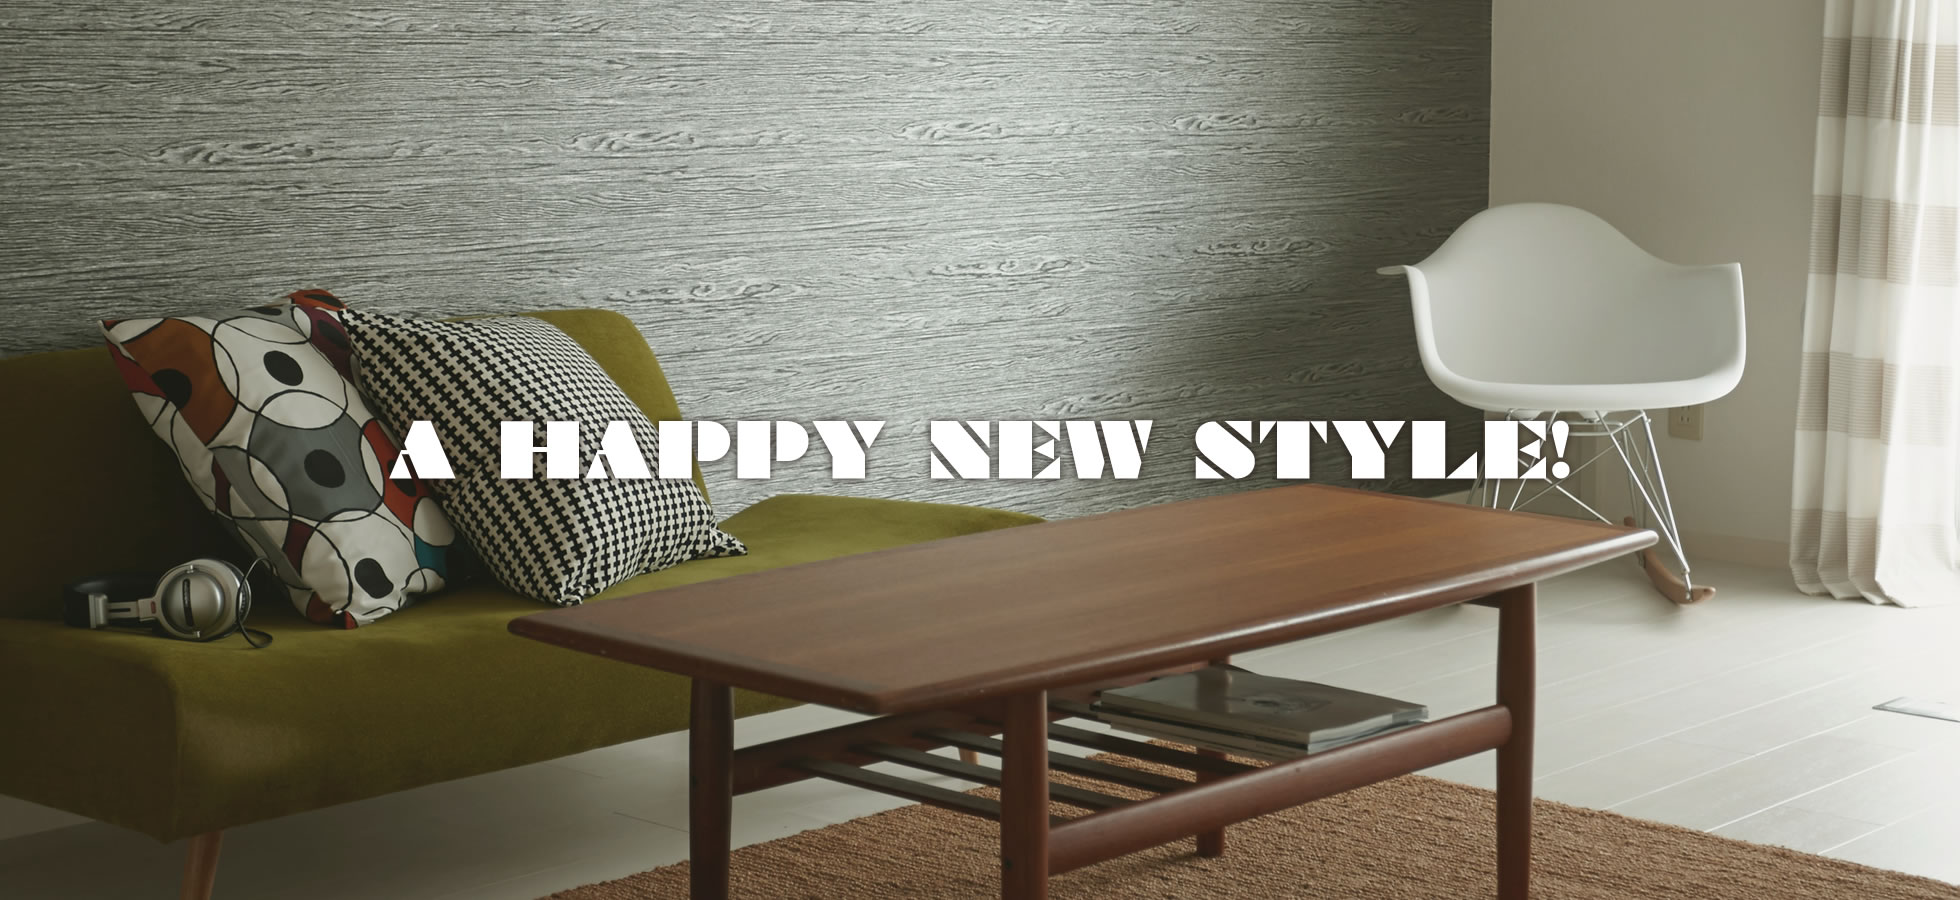 A HAPPY NEW STYLE!